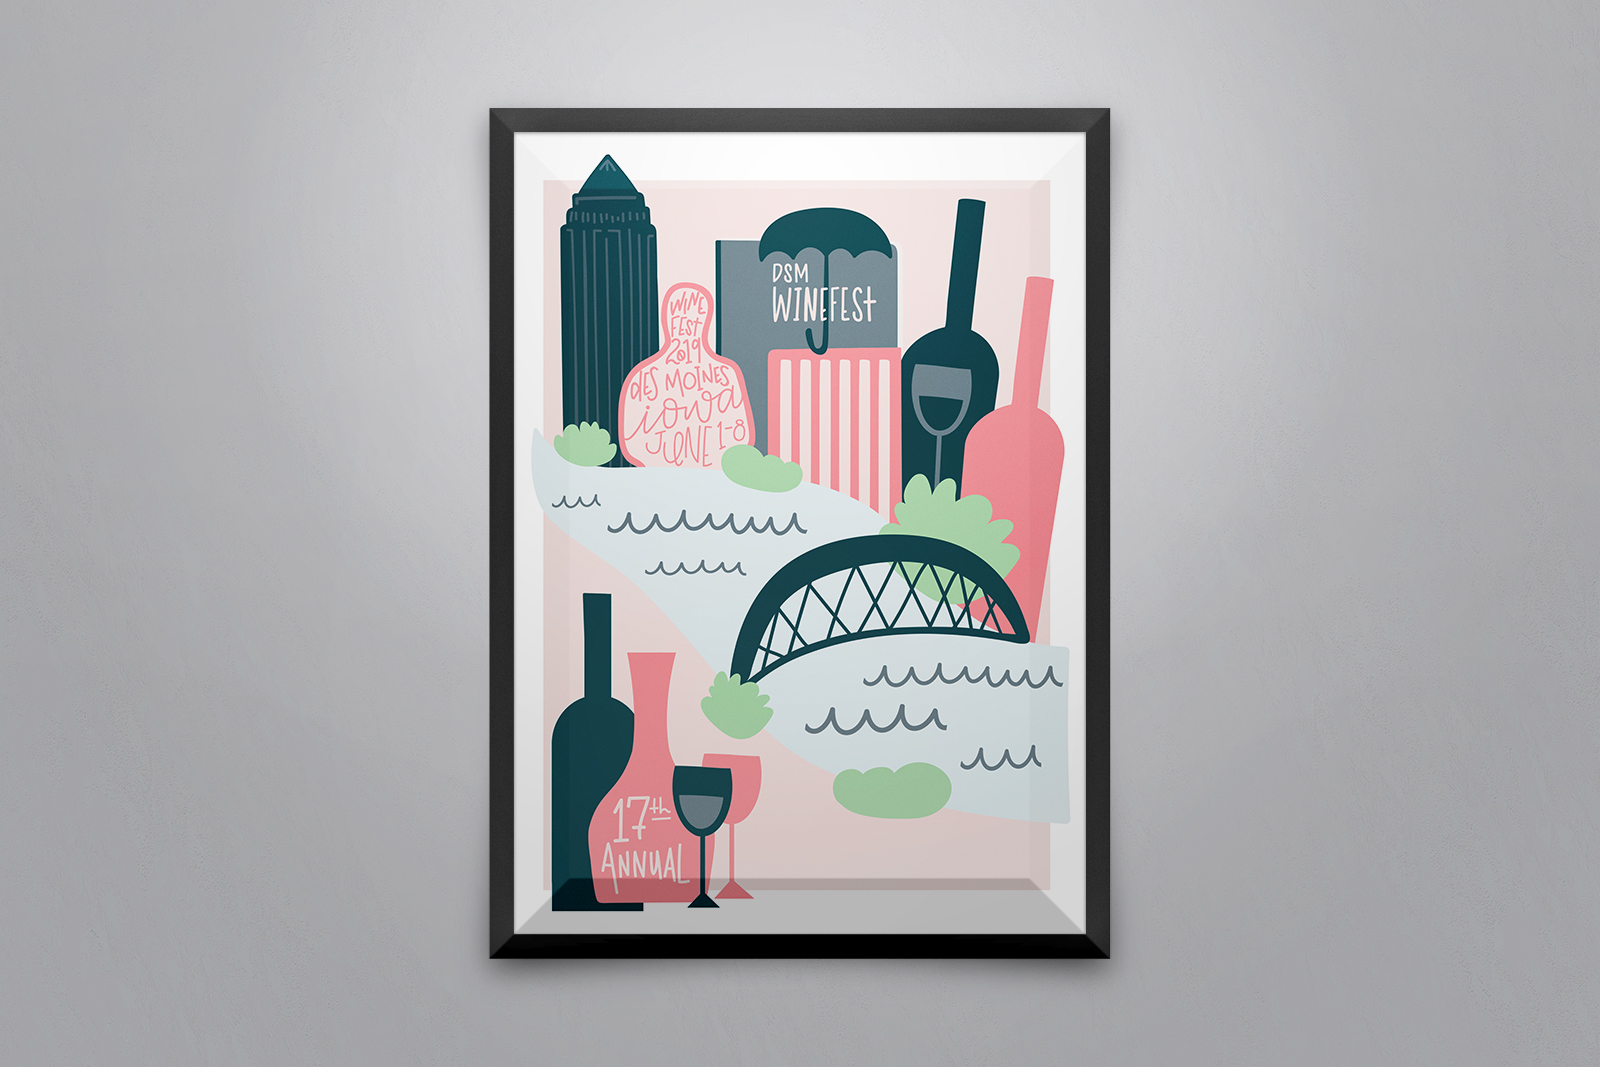 The annual, illustrated Winefest poster showing the Des Moines skyline, river, and wine bottles.